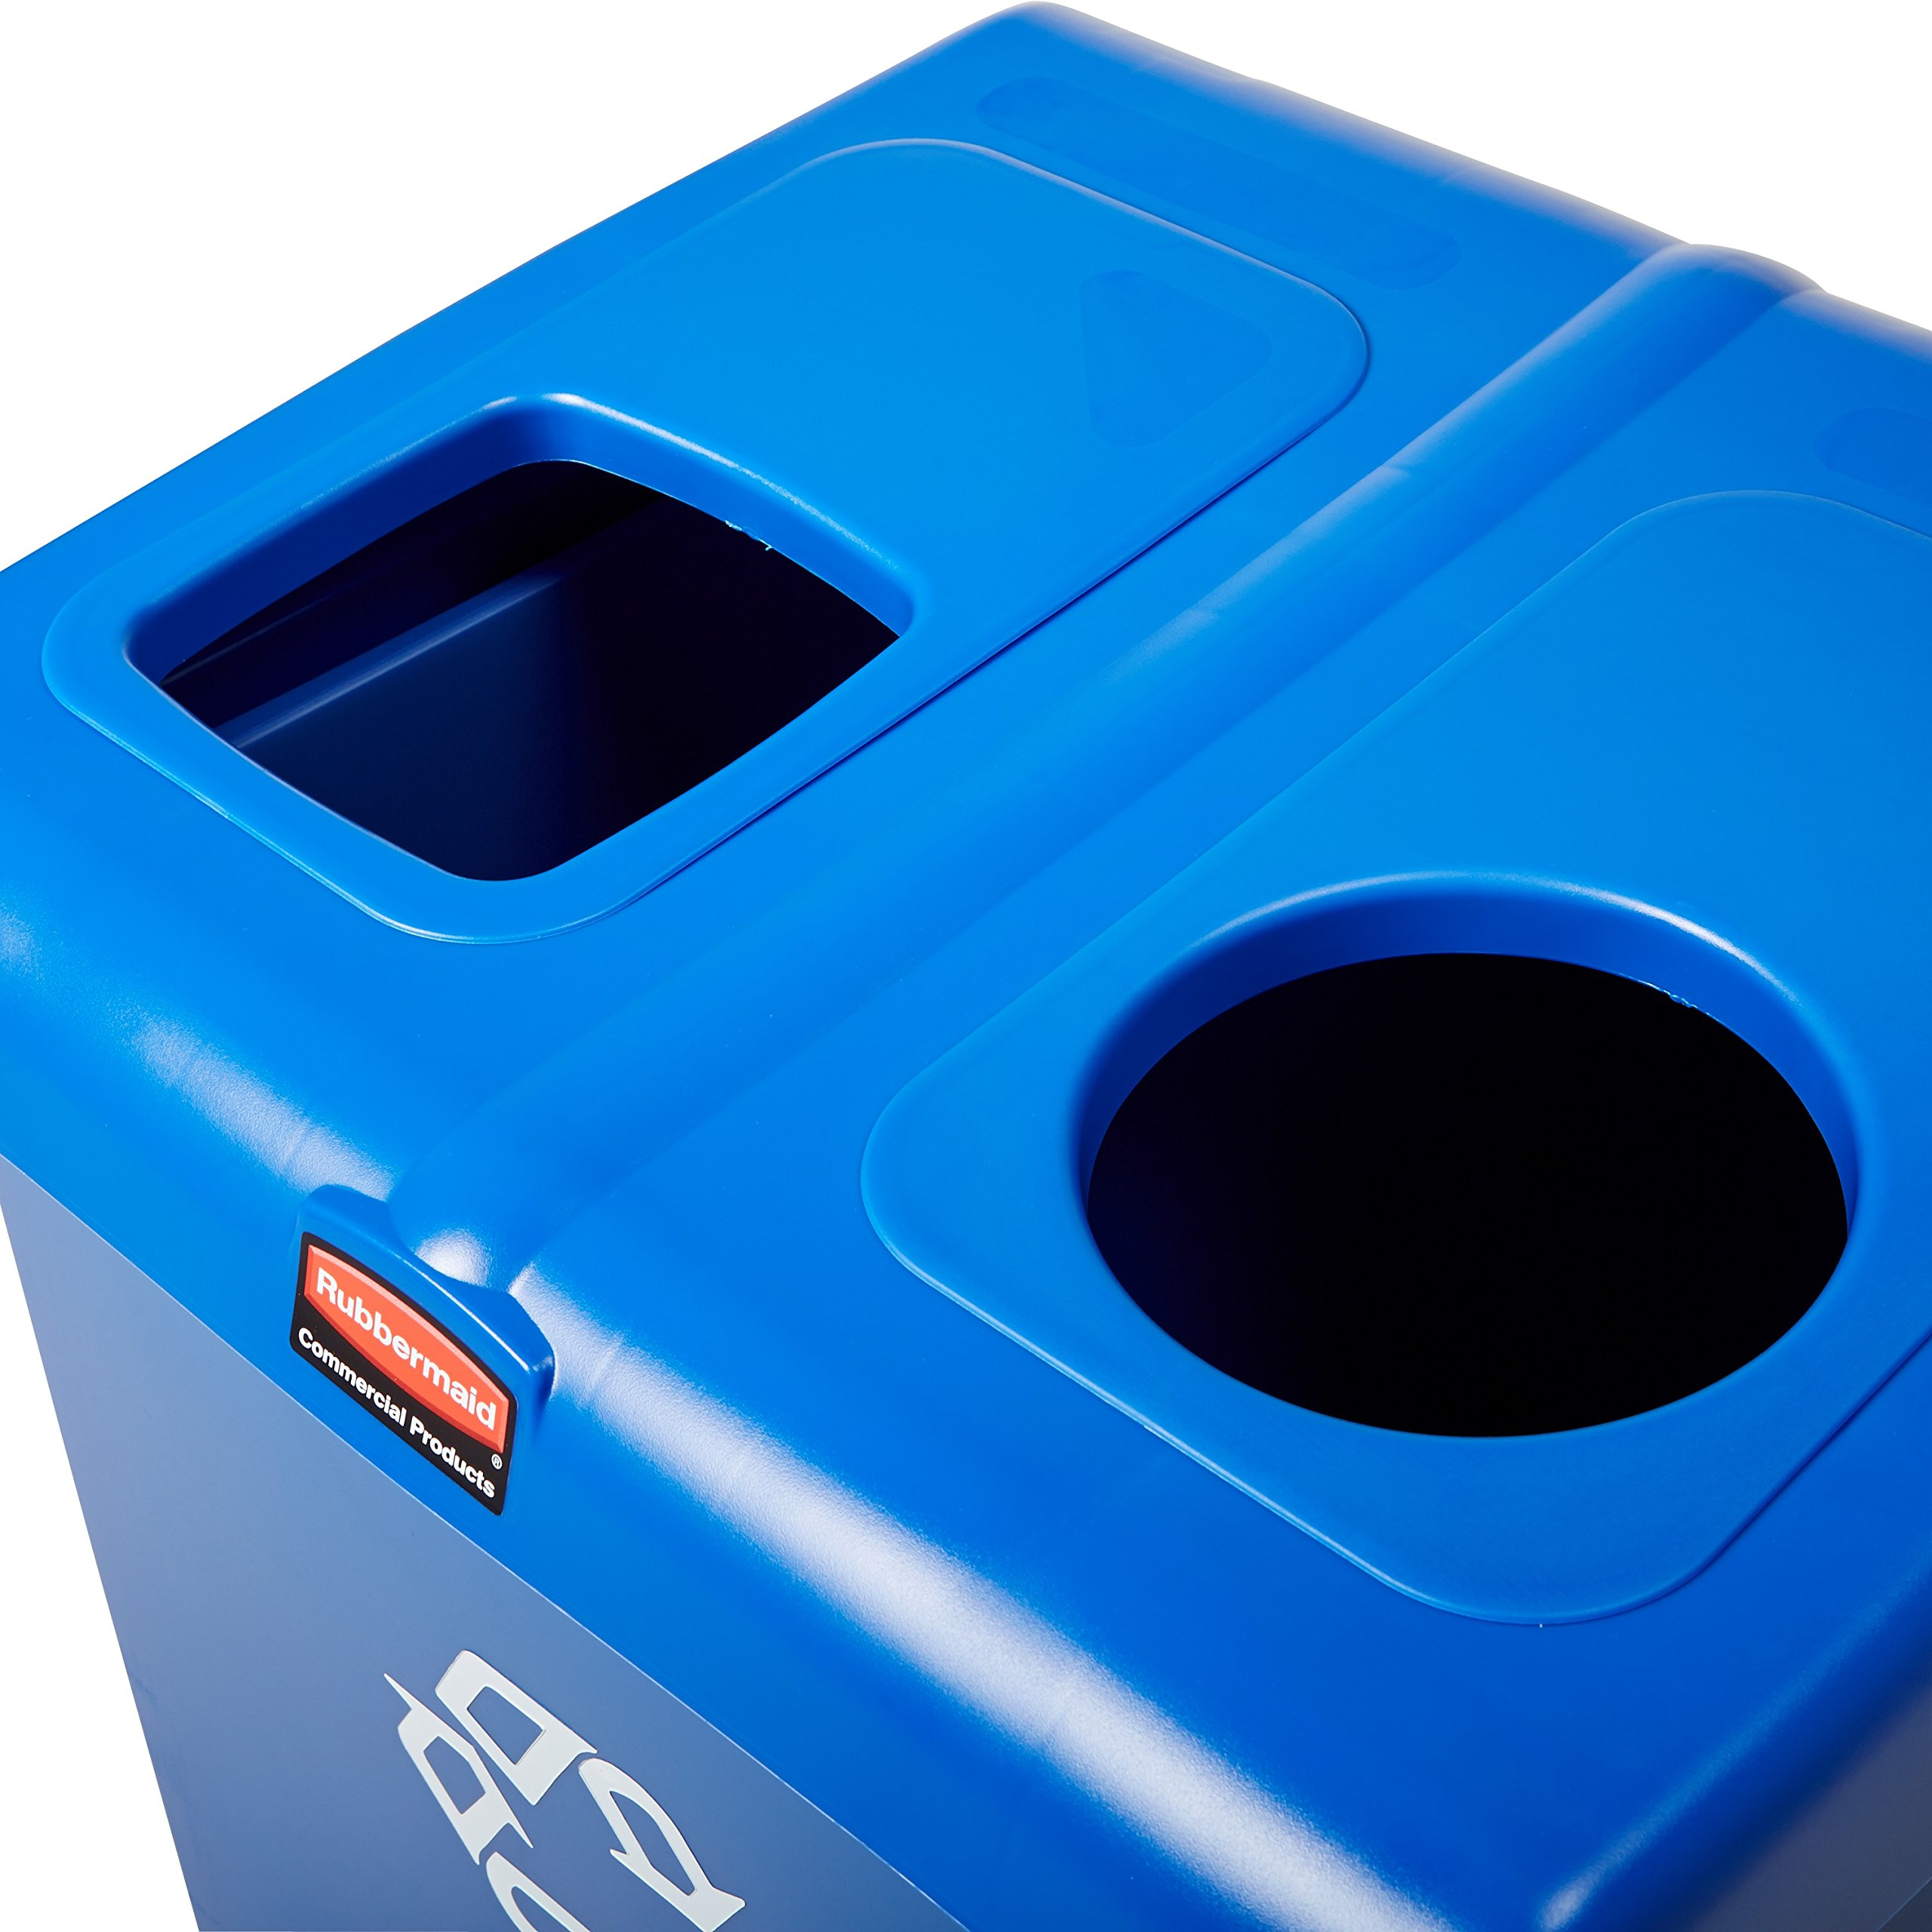 Rubbermaid Commercial 1792339 Glutton Recycling Station, 2-Stream, 46-Gallon, Blue by Rubbermaid Commercial Products (Image #6)